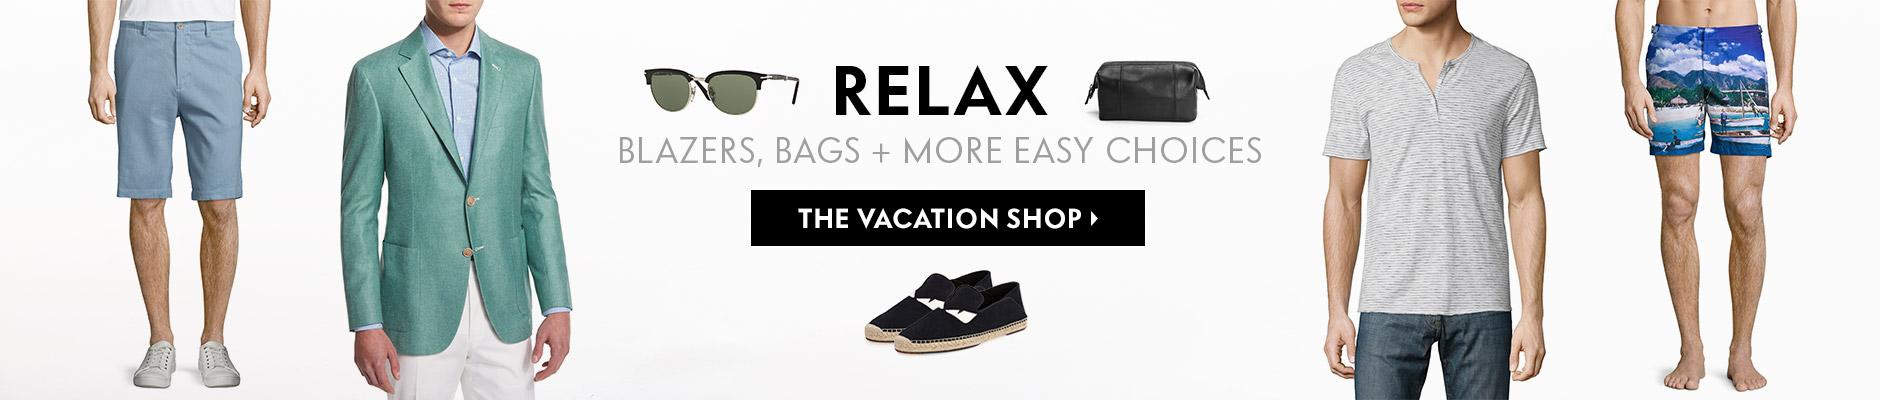 Relax - Blazers, bags + more easy choices - The Vacation Shop